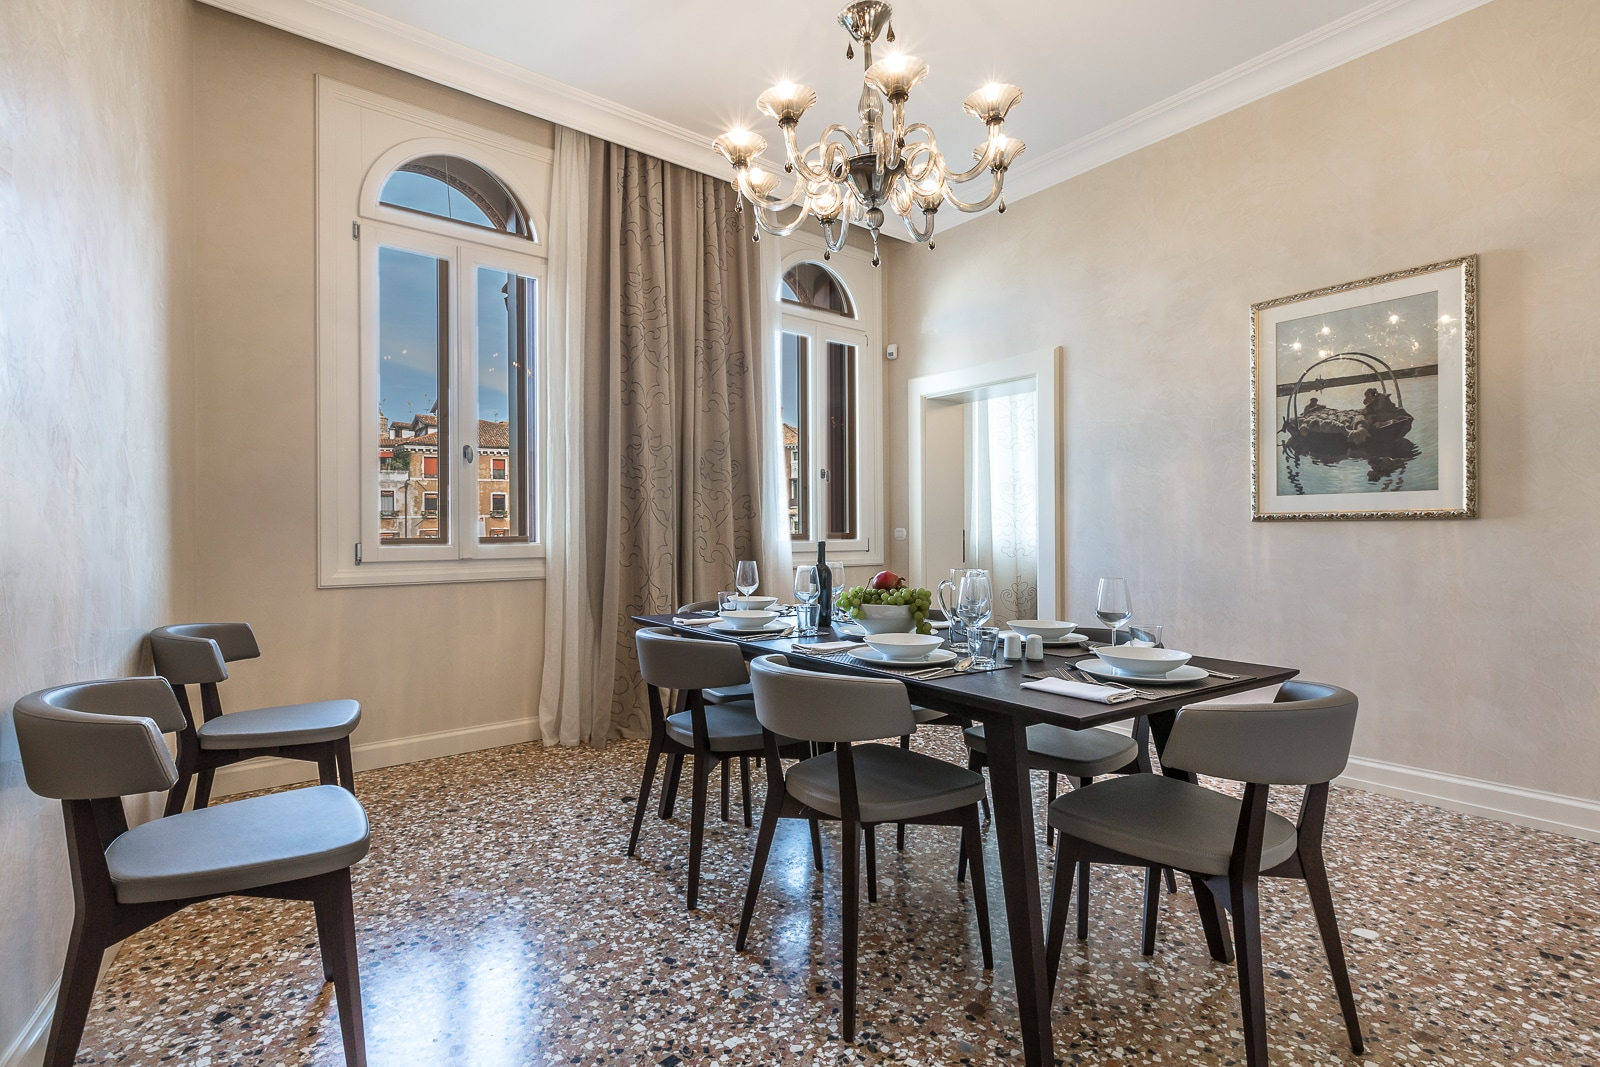 Property Image 1 - Apt on the Second Floor of an Exquisite Waterside Palace